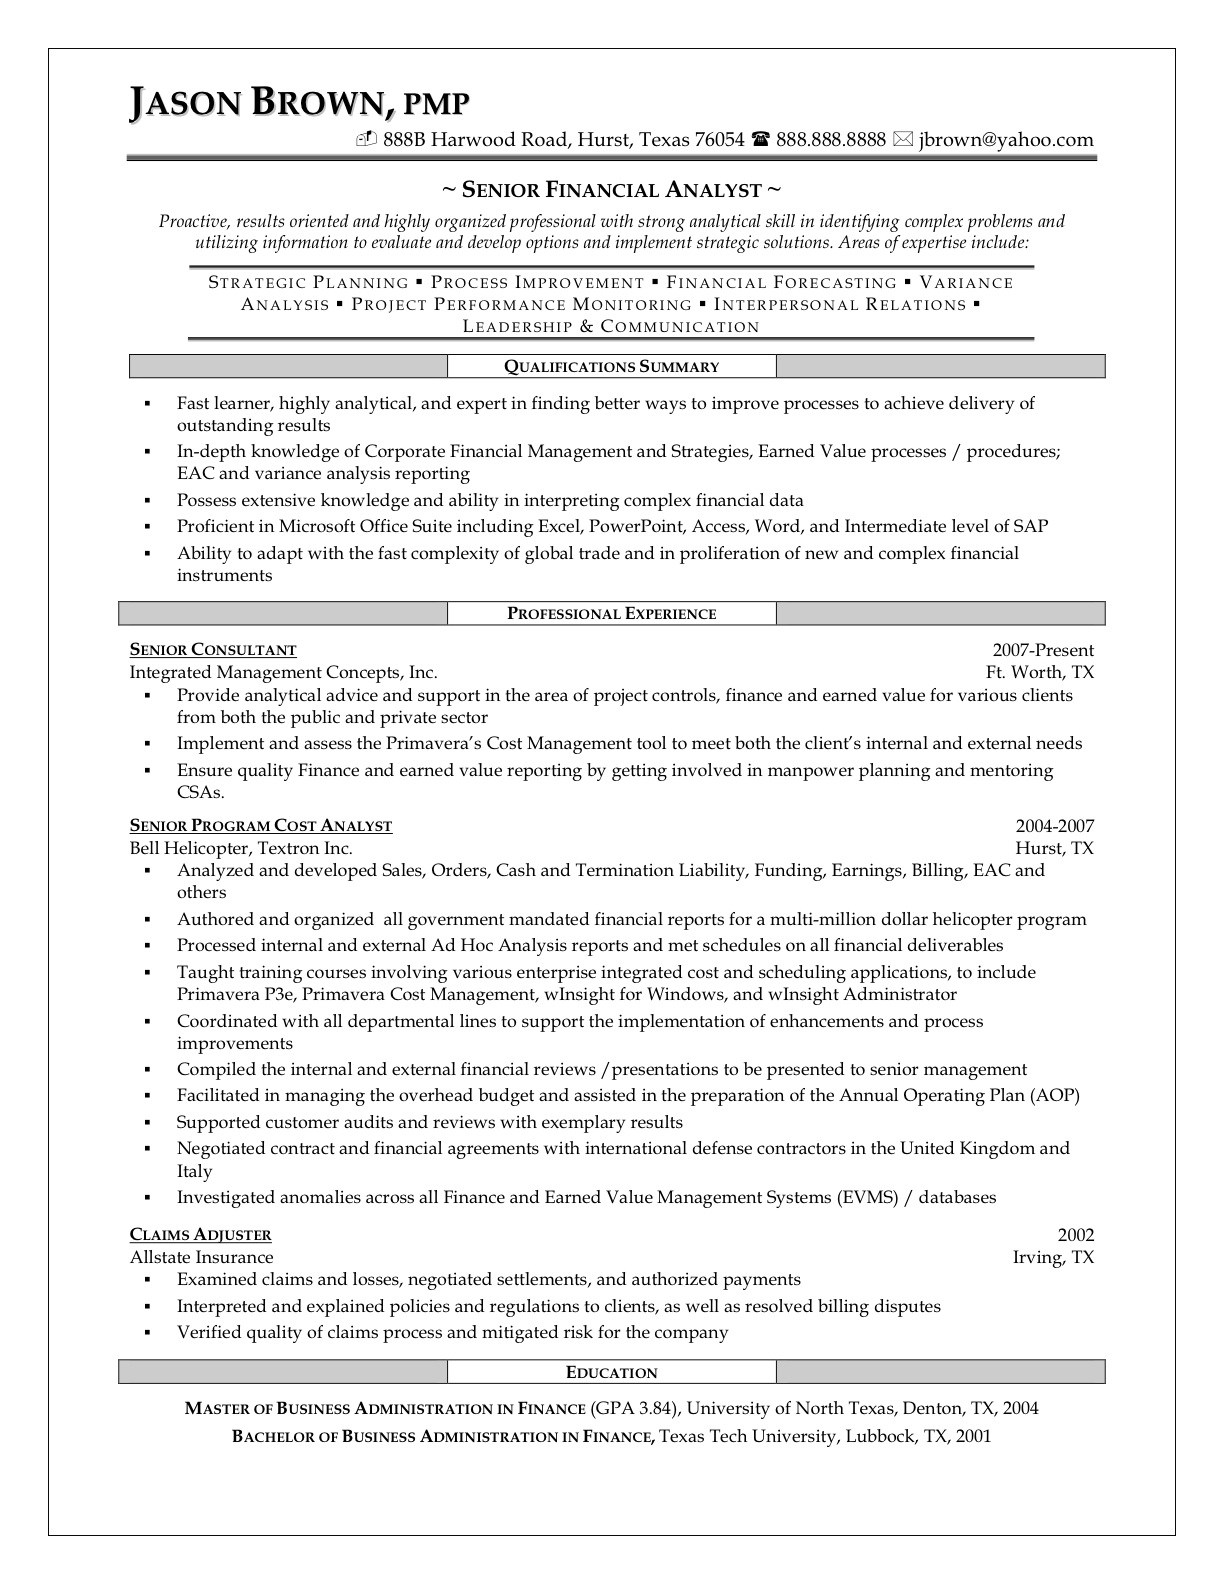 Resume In Finance Best Financial Analyst Job Resume Sample